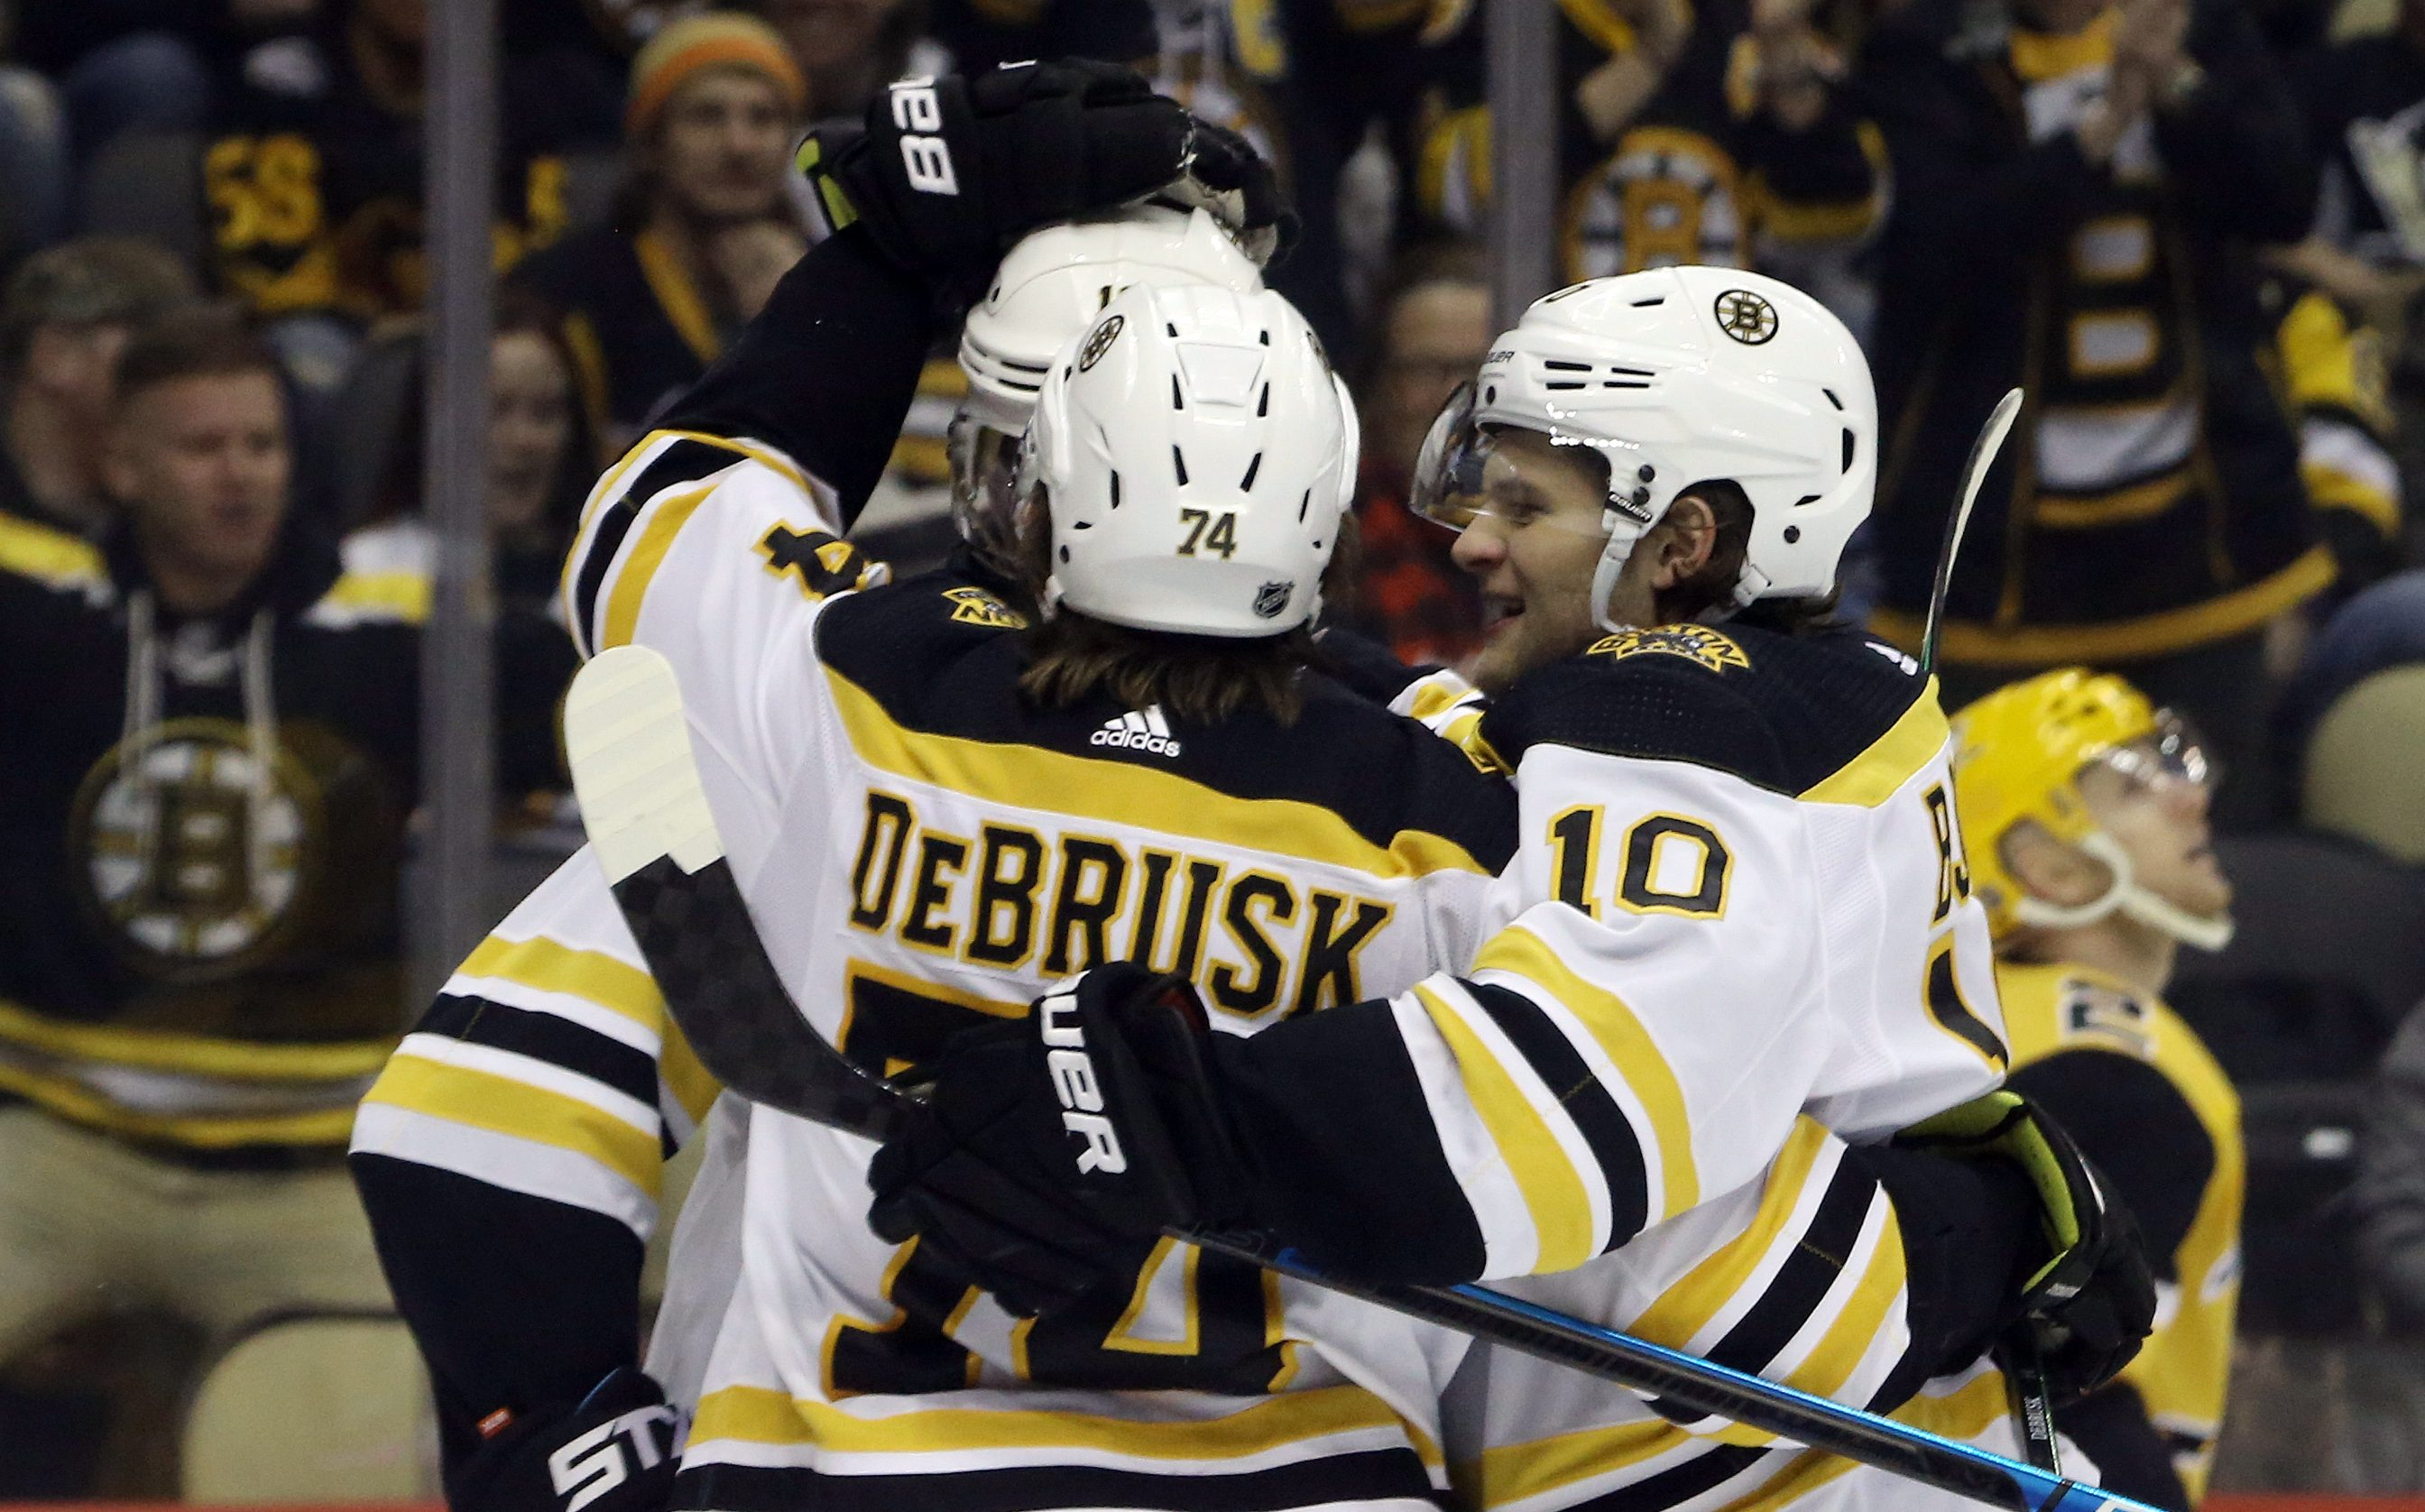 Bruins Will Rely on Their Youth in the Second Half